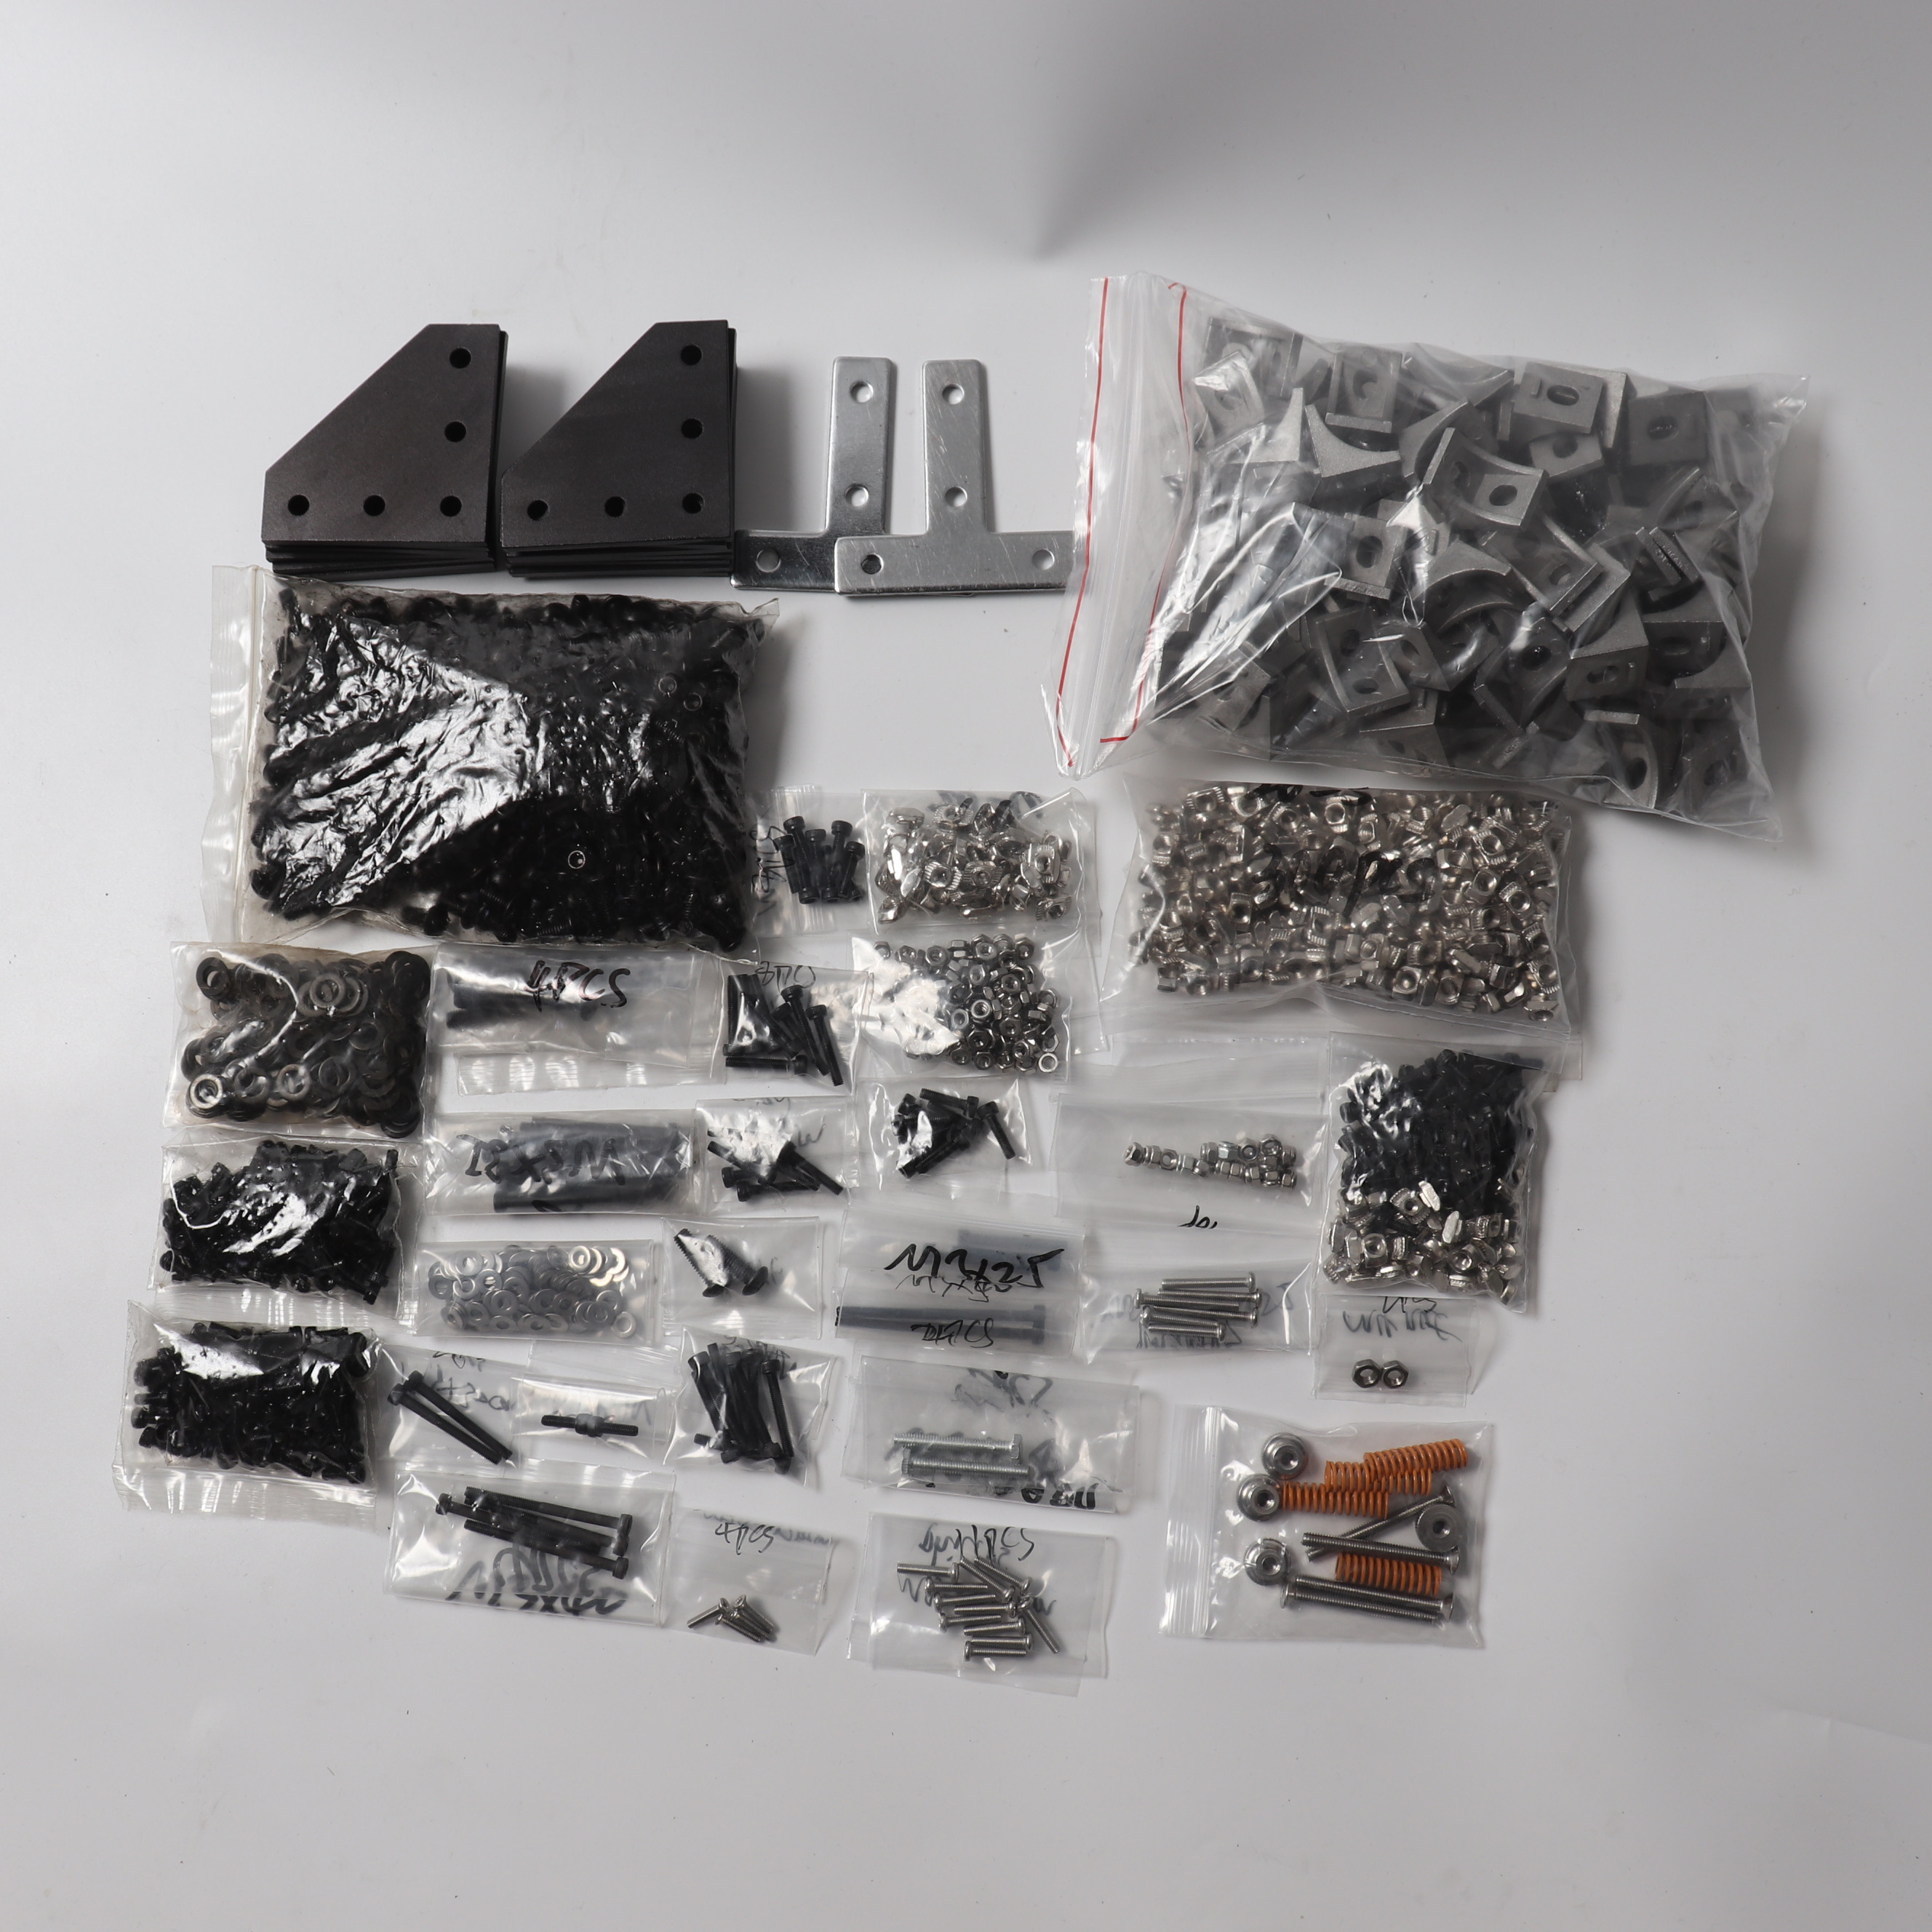 BLV 3D Printer Full Screws Nuts, Bracket And Corners Kit For BLV MGN Cube 3d Printer 5 Holes Joining Plate 60*60 T Joining Plate